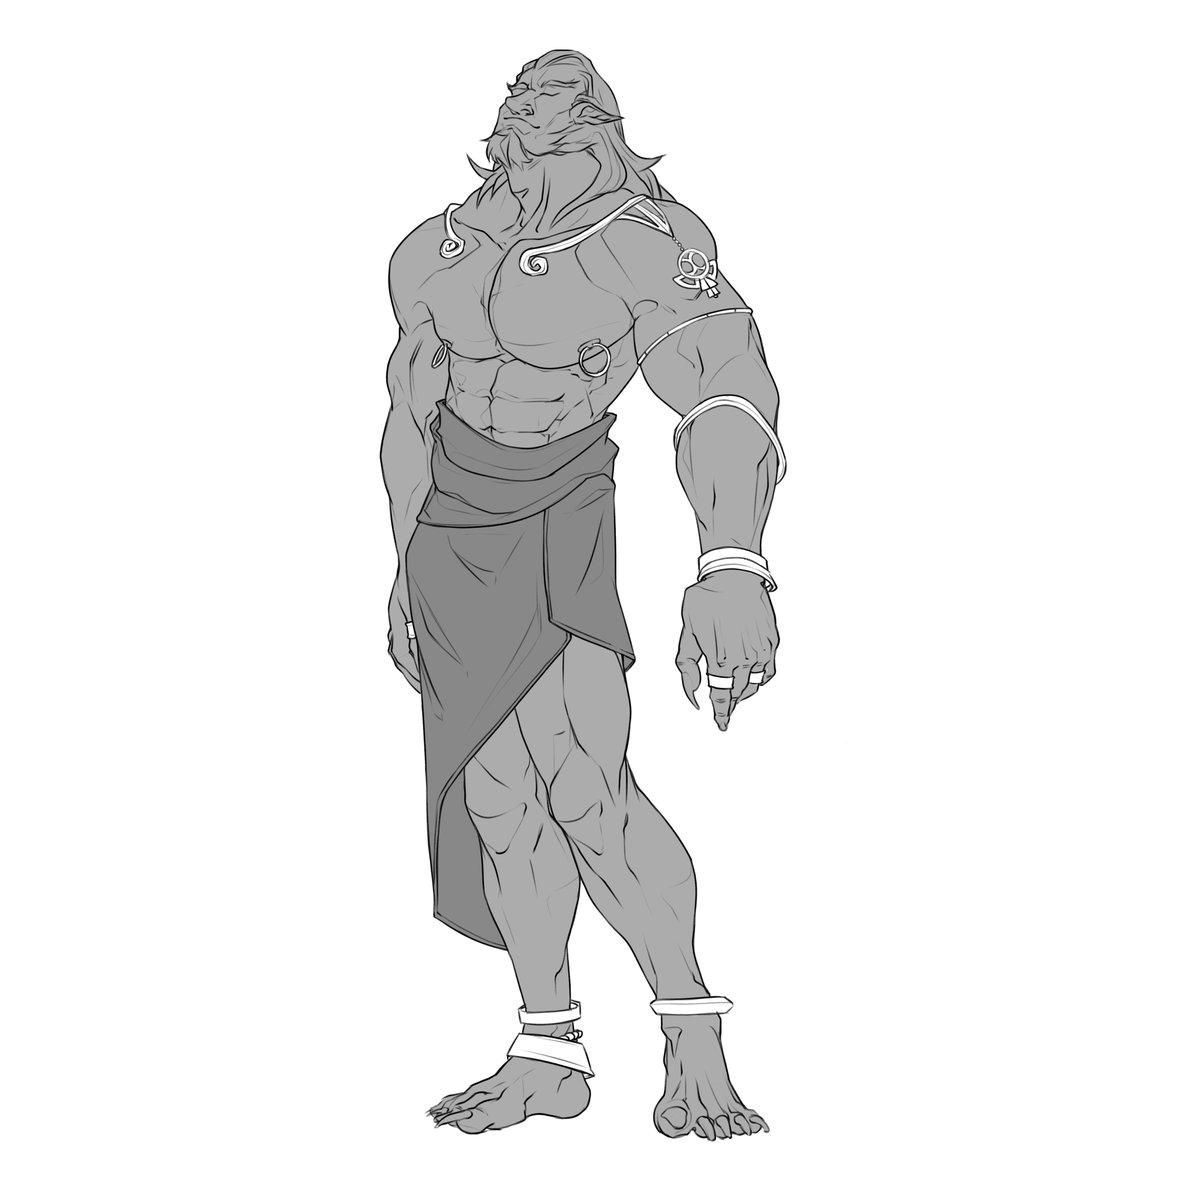 Got this #sexy #ganondorf #requested on Instagram a few weeks back!  I kinda fucked up some #proportions but I still think its looks really #cool!  #beefcake #bara #muscle #BOTW https://t.co/hrZtW1KY9r